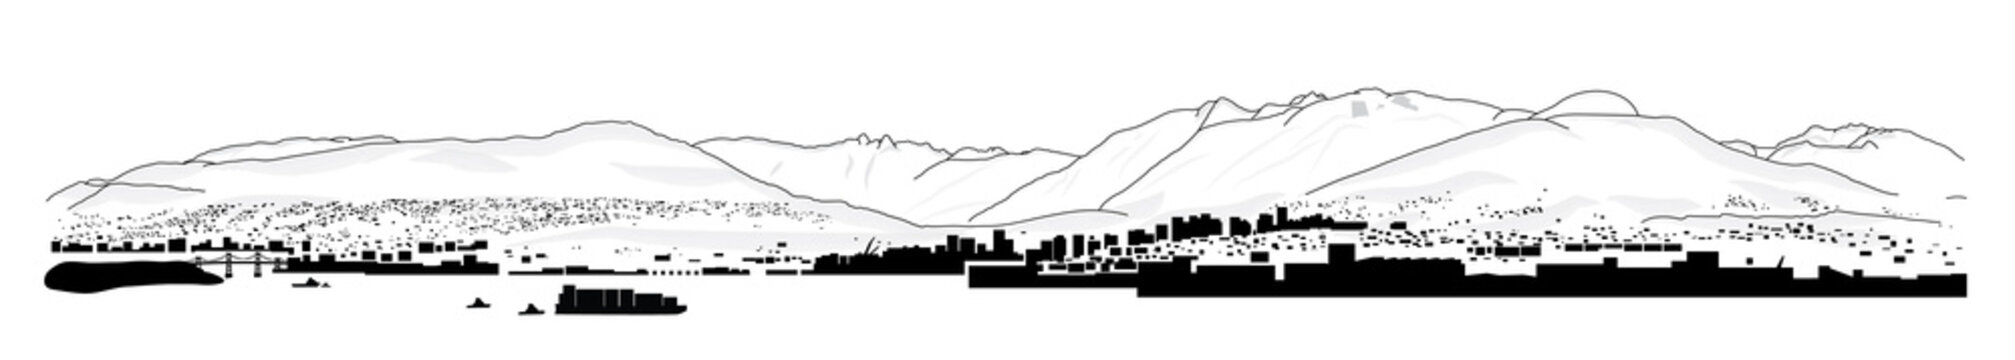 North shore mountains. Panorama illustration or drawing of local mountains and peak in Vancouver BC, Canada. View of lions gate bridge, harbor, industry, North and West Vancouver. Tourist information.